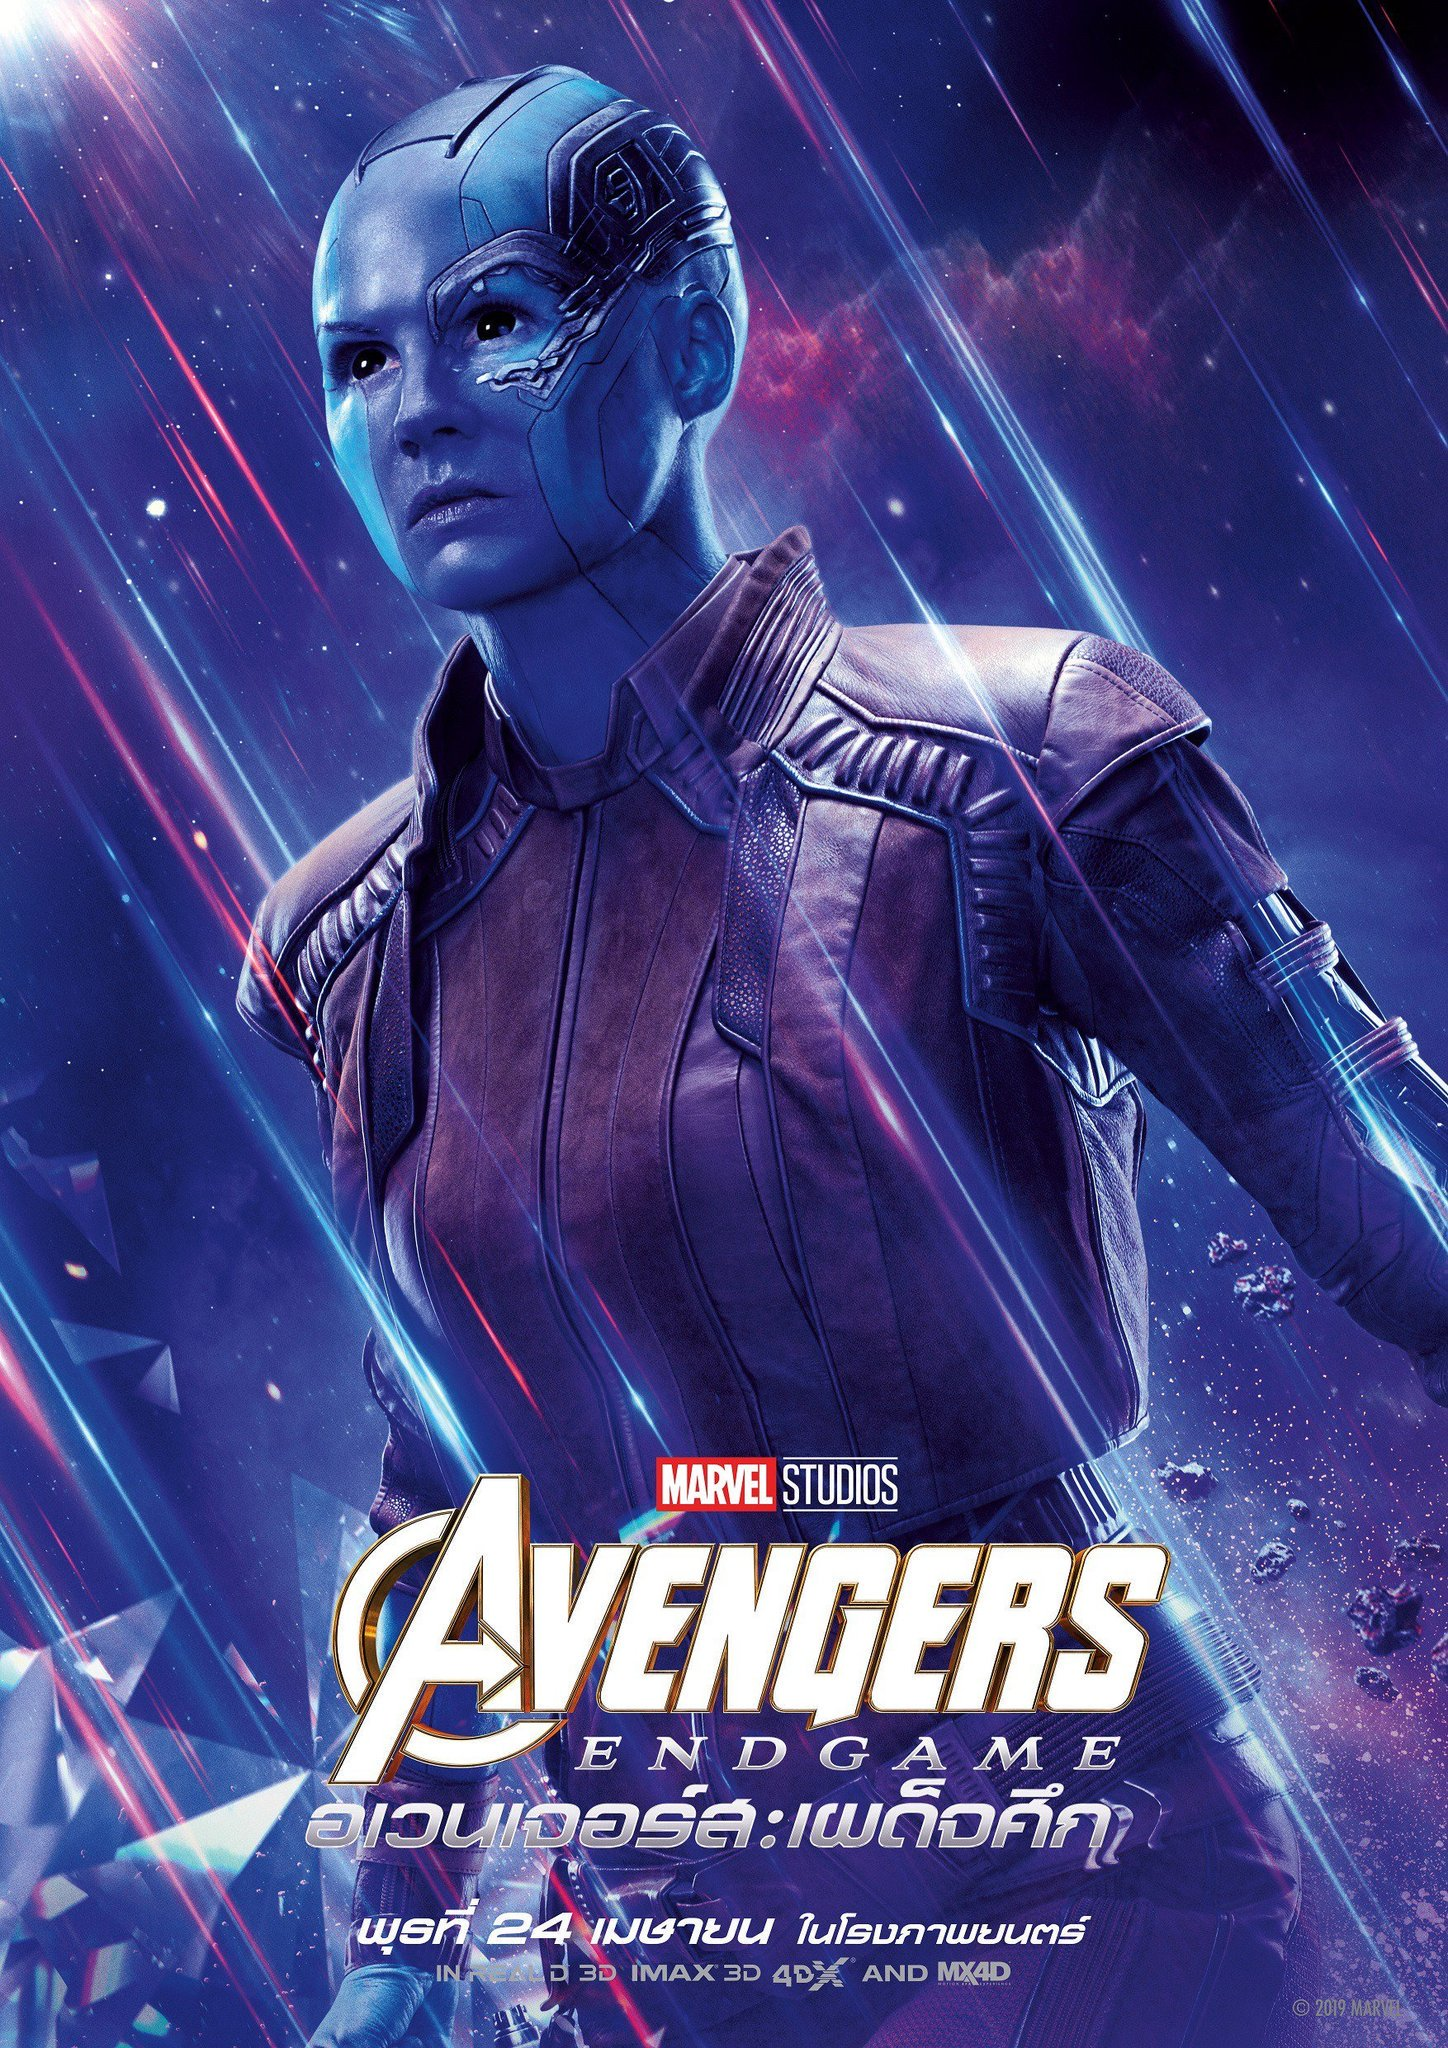 Avengers Endgame Character Posters Nebula Lyles Movie Files